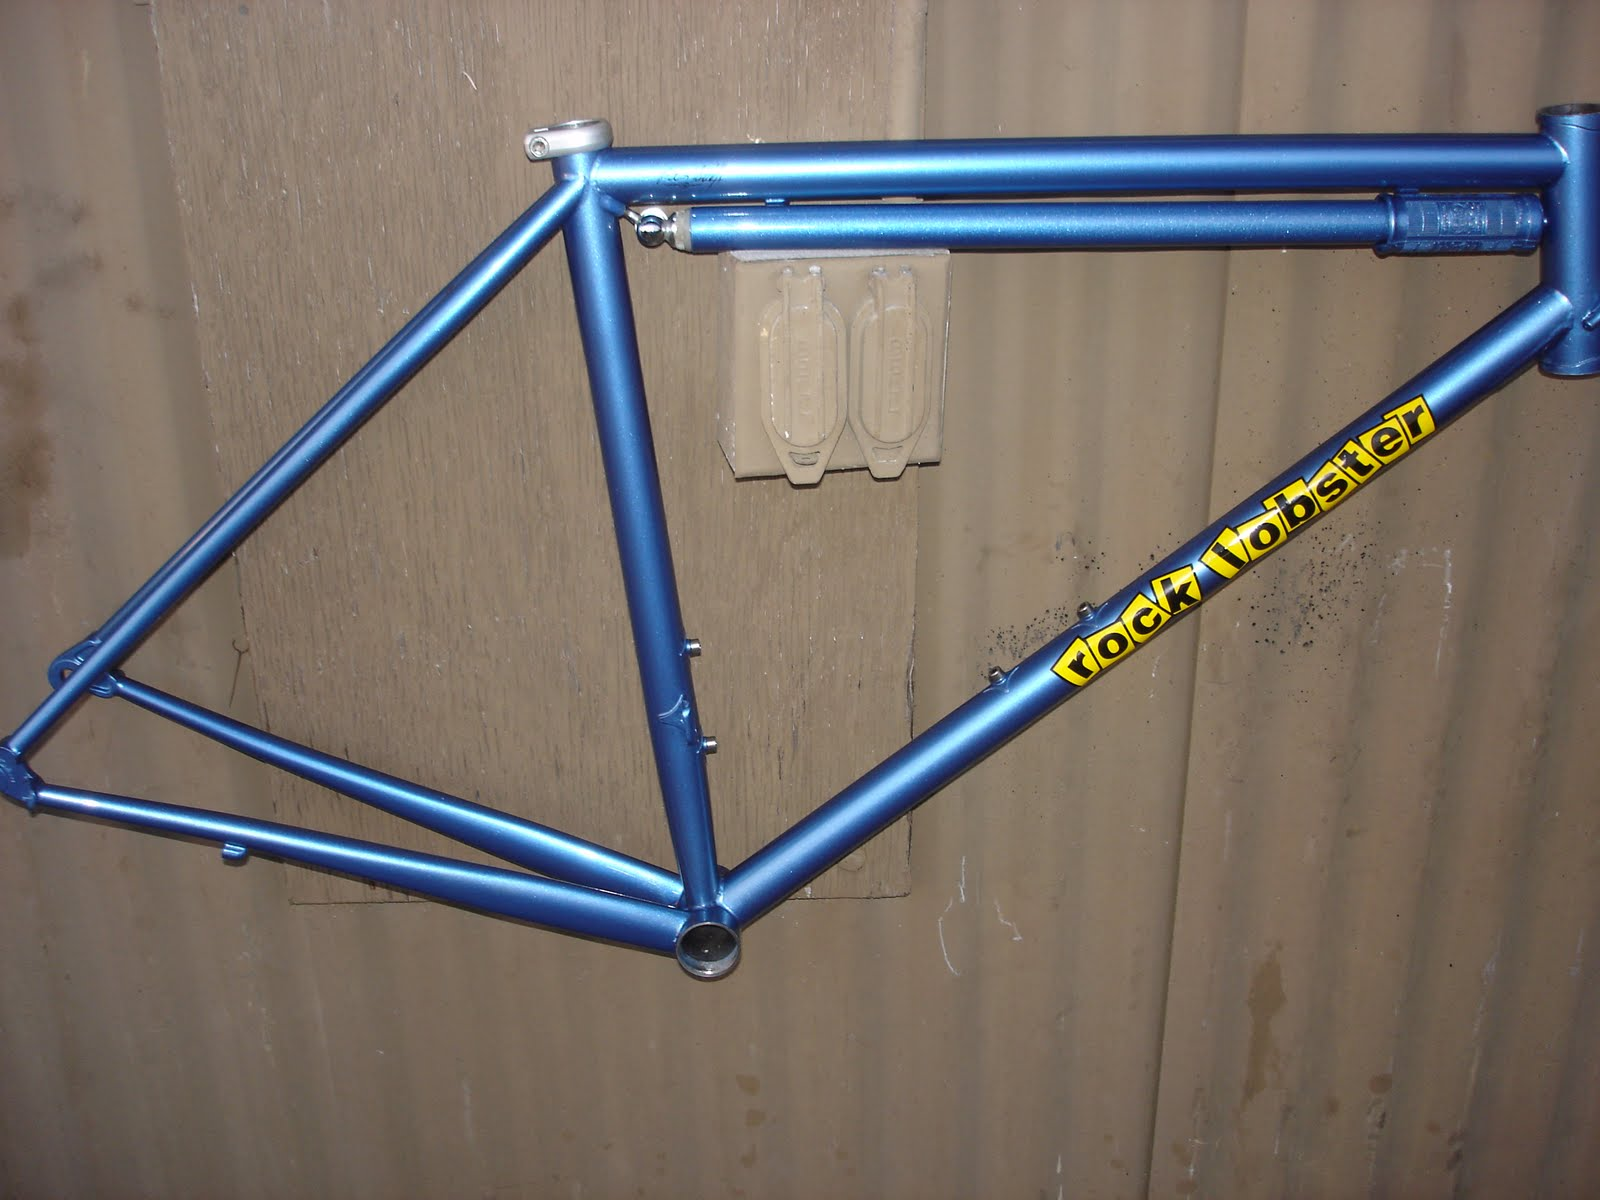 way back in the 70s the thing to do with your custom frame was to have a silca pump painted to match the paint of the day was not powdercoat but du